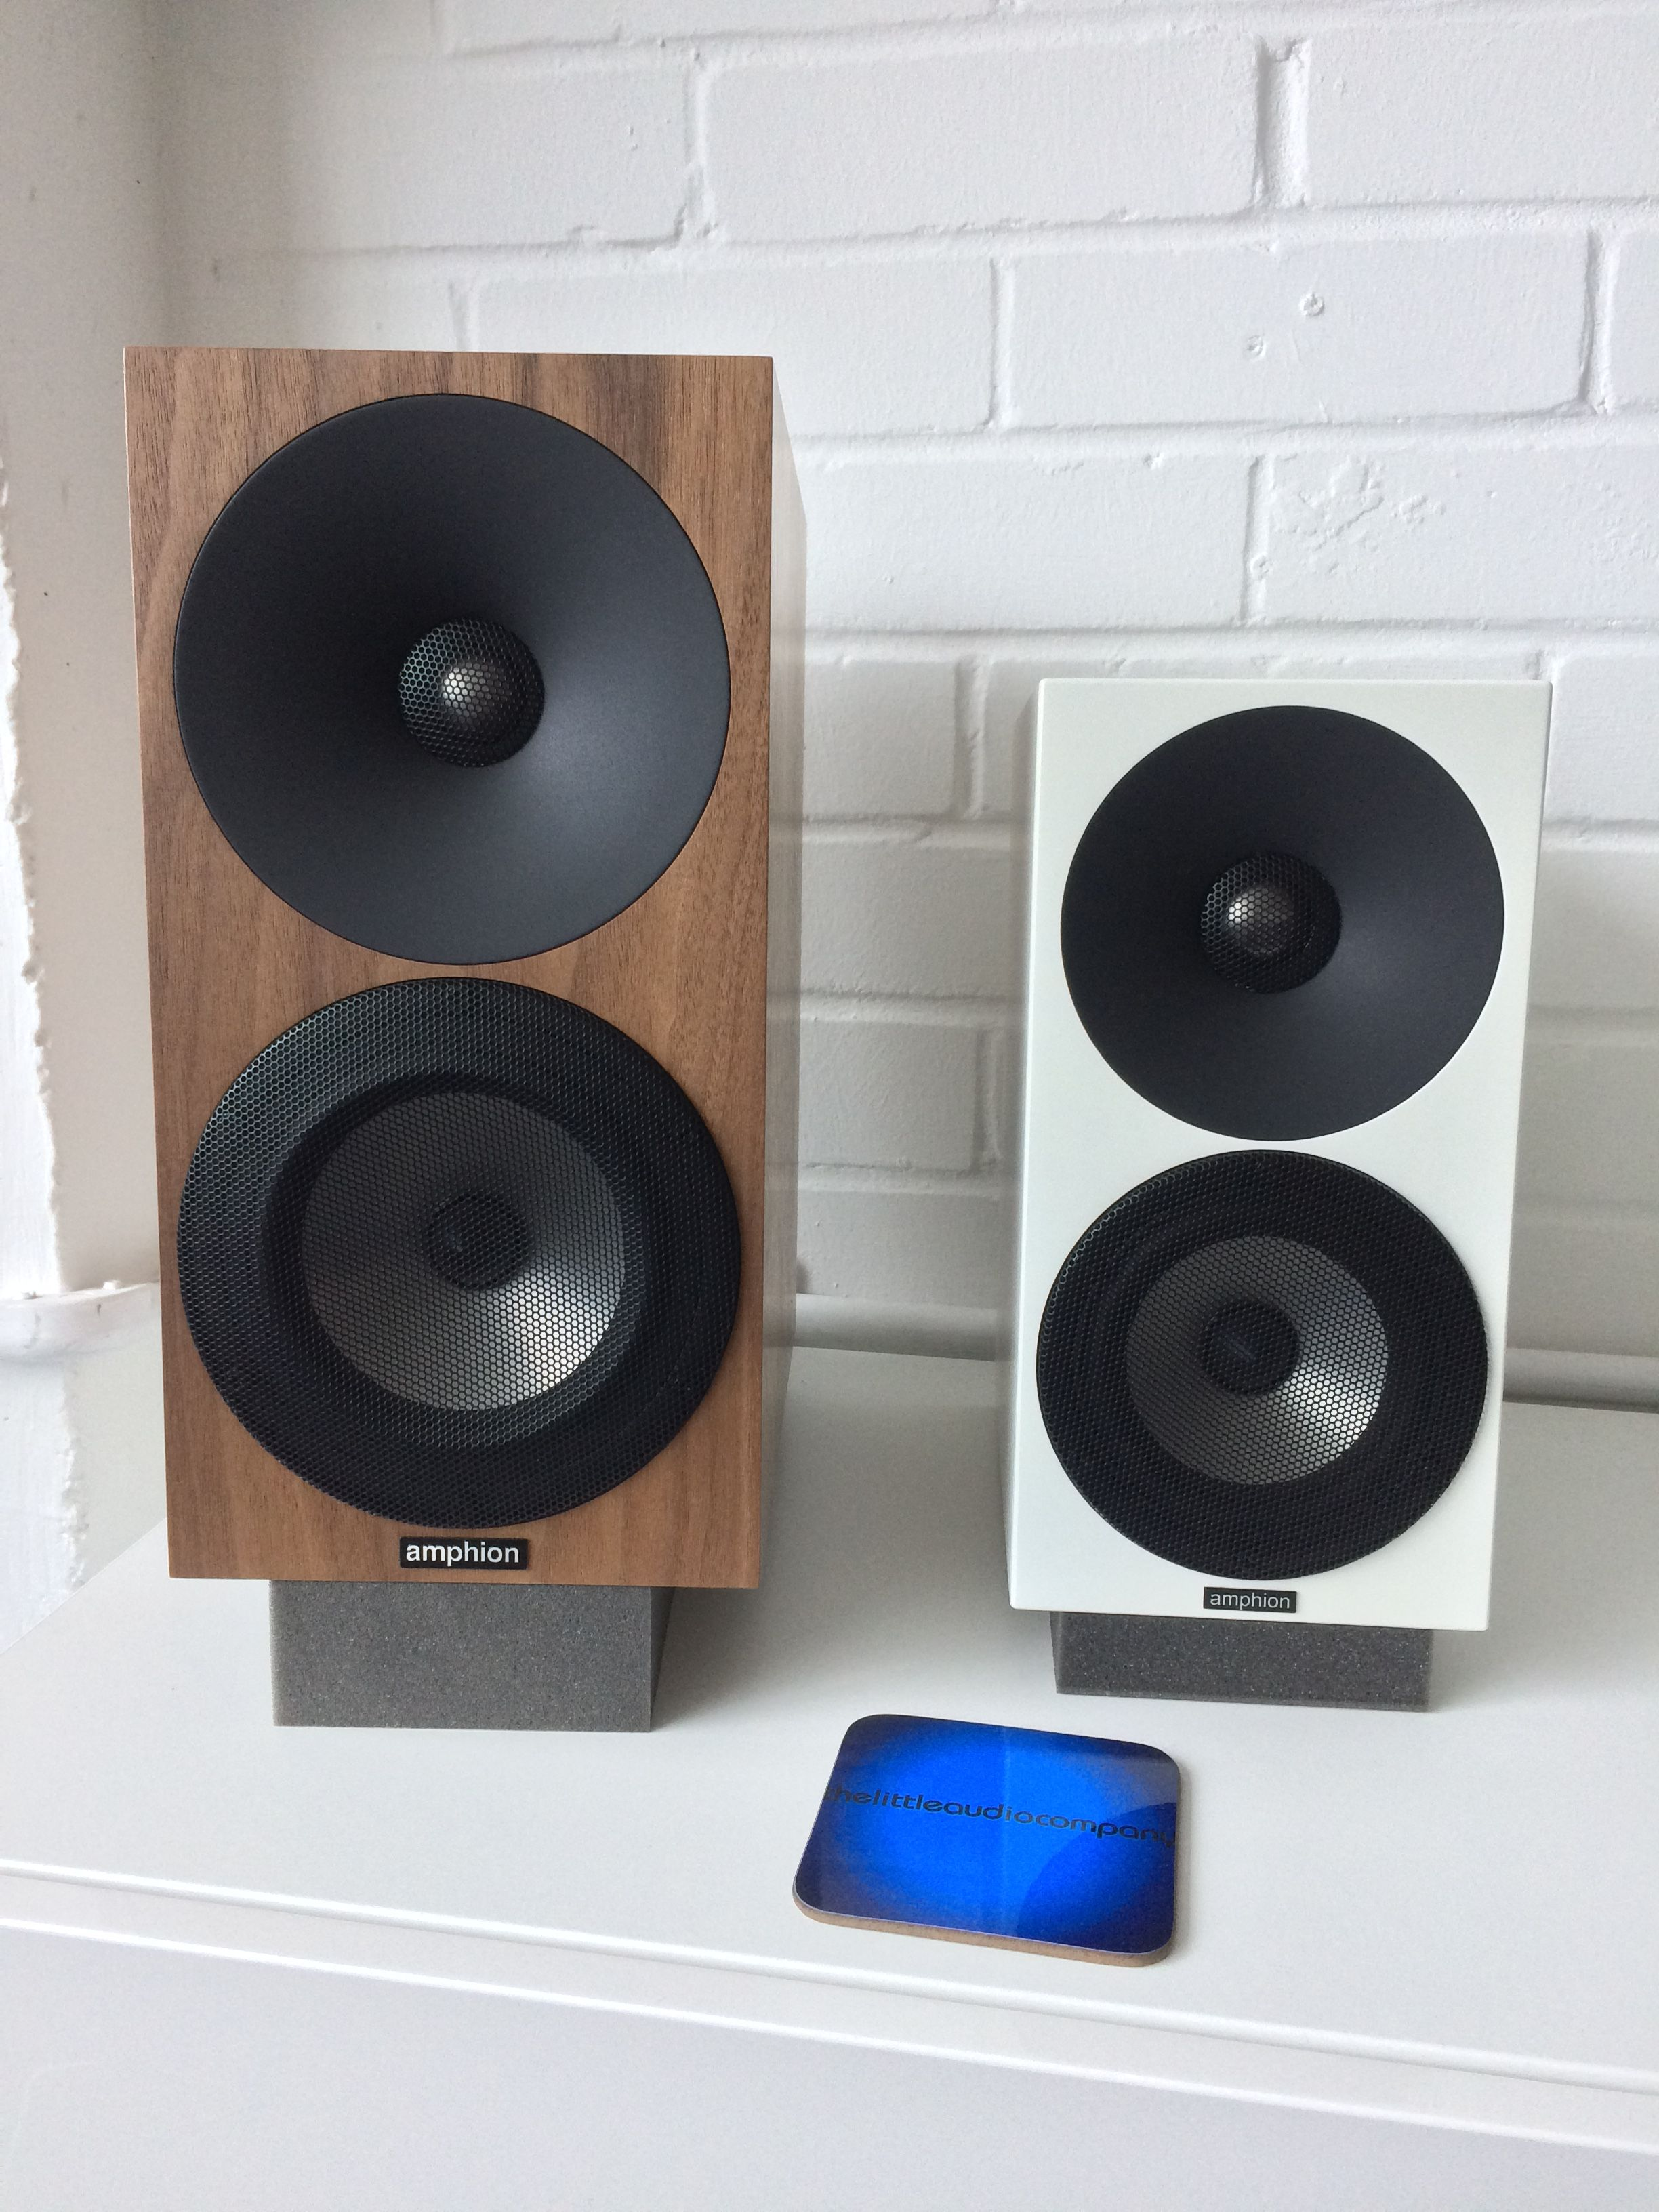 Amphion Argon 1 and Argon 0 loudspeakers at the little audio company in  Birmingham. 6590973a77074